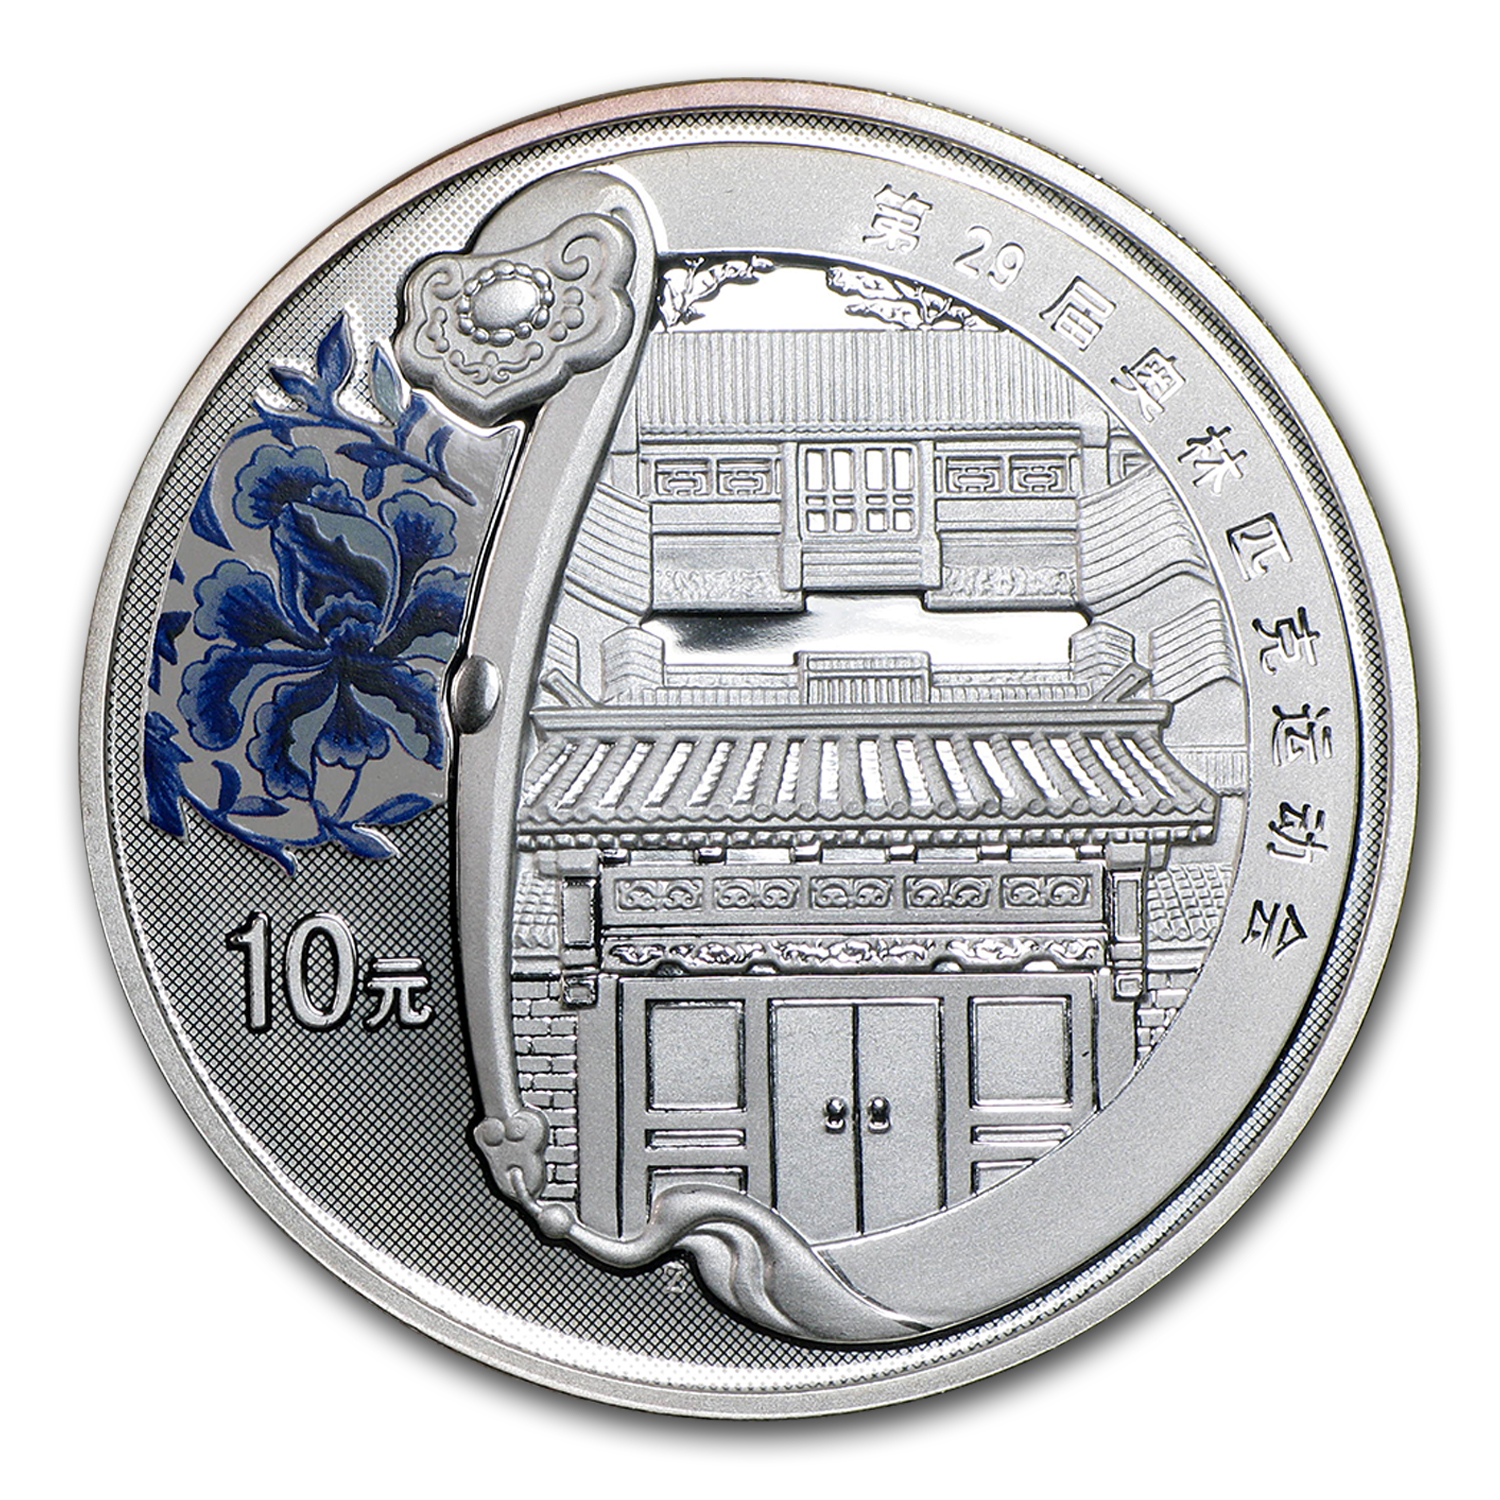 2008 China 1 oz Silver Beijing Olympics The Great Wall